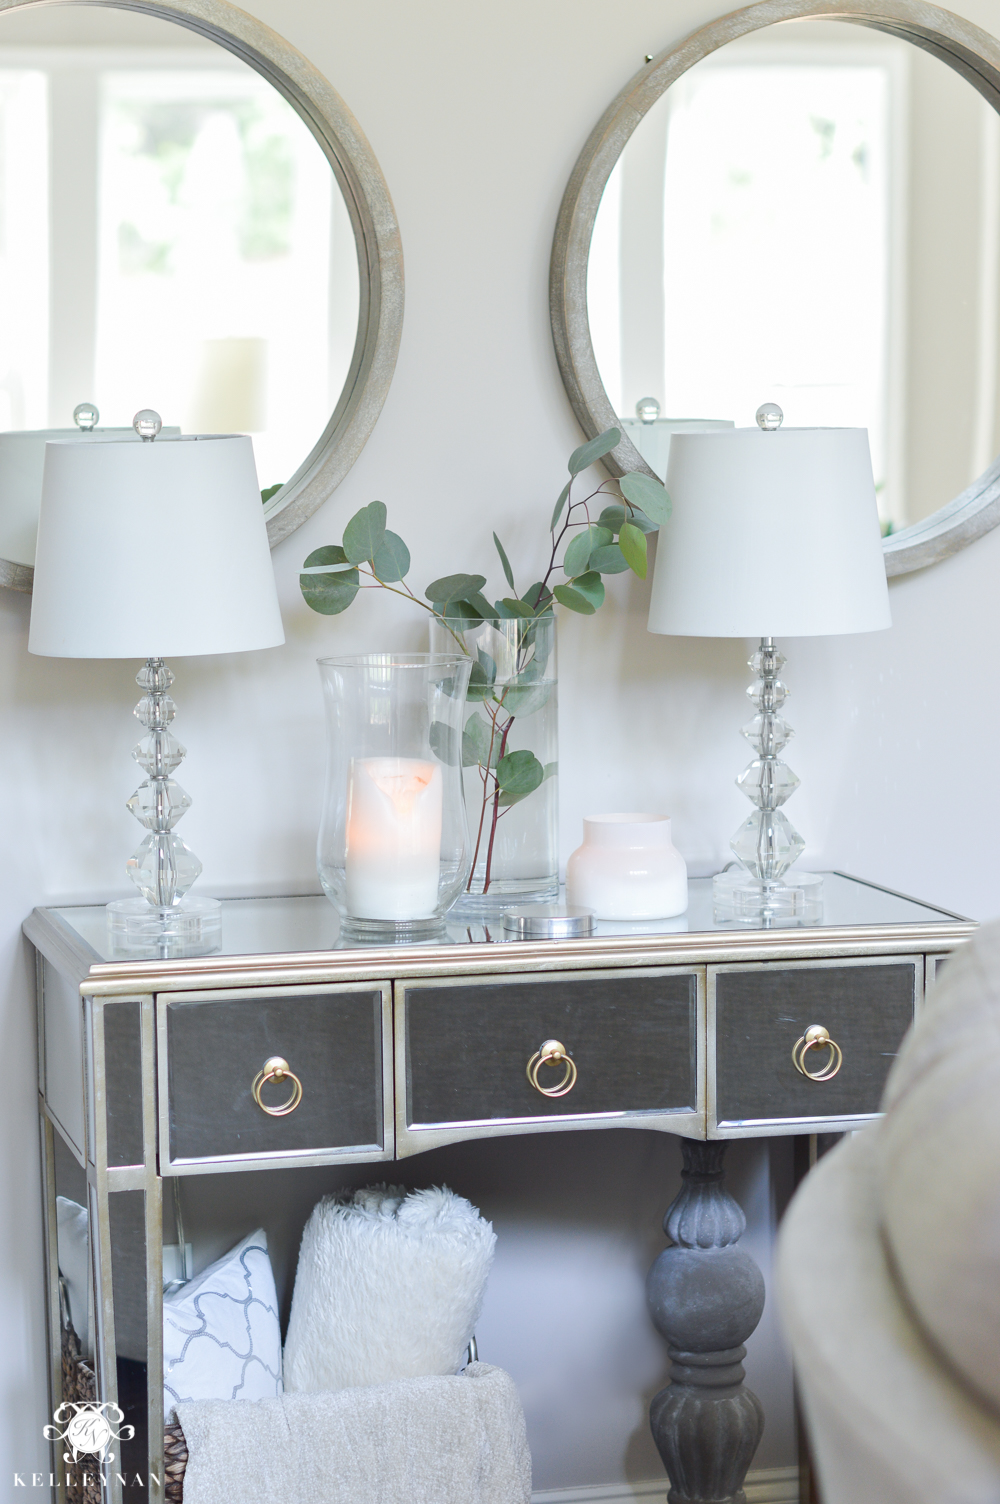 Shades of Summer Home Tour with Neutrals and Naturals- Mirrored Console Table with Mirrors above